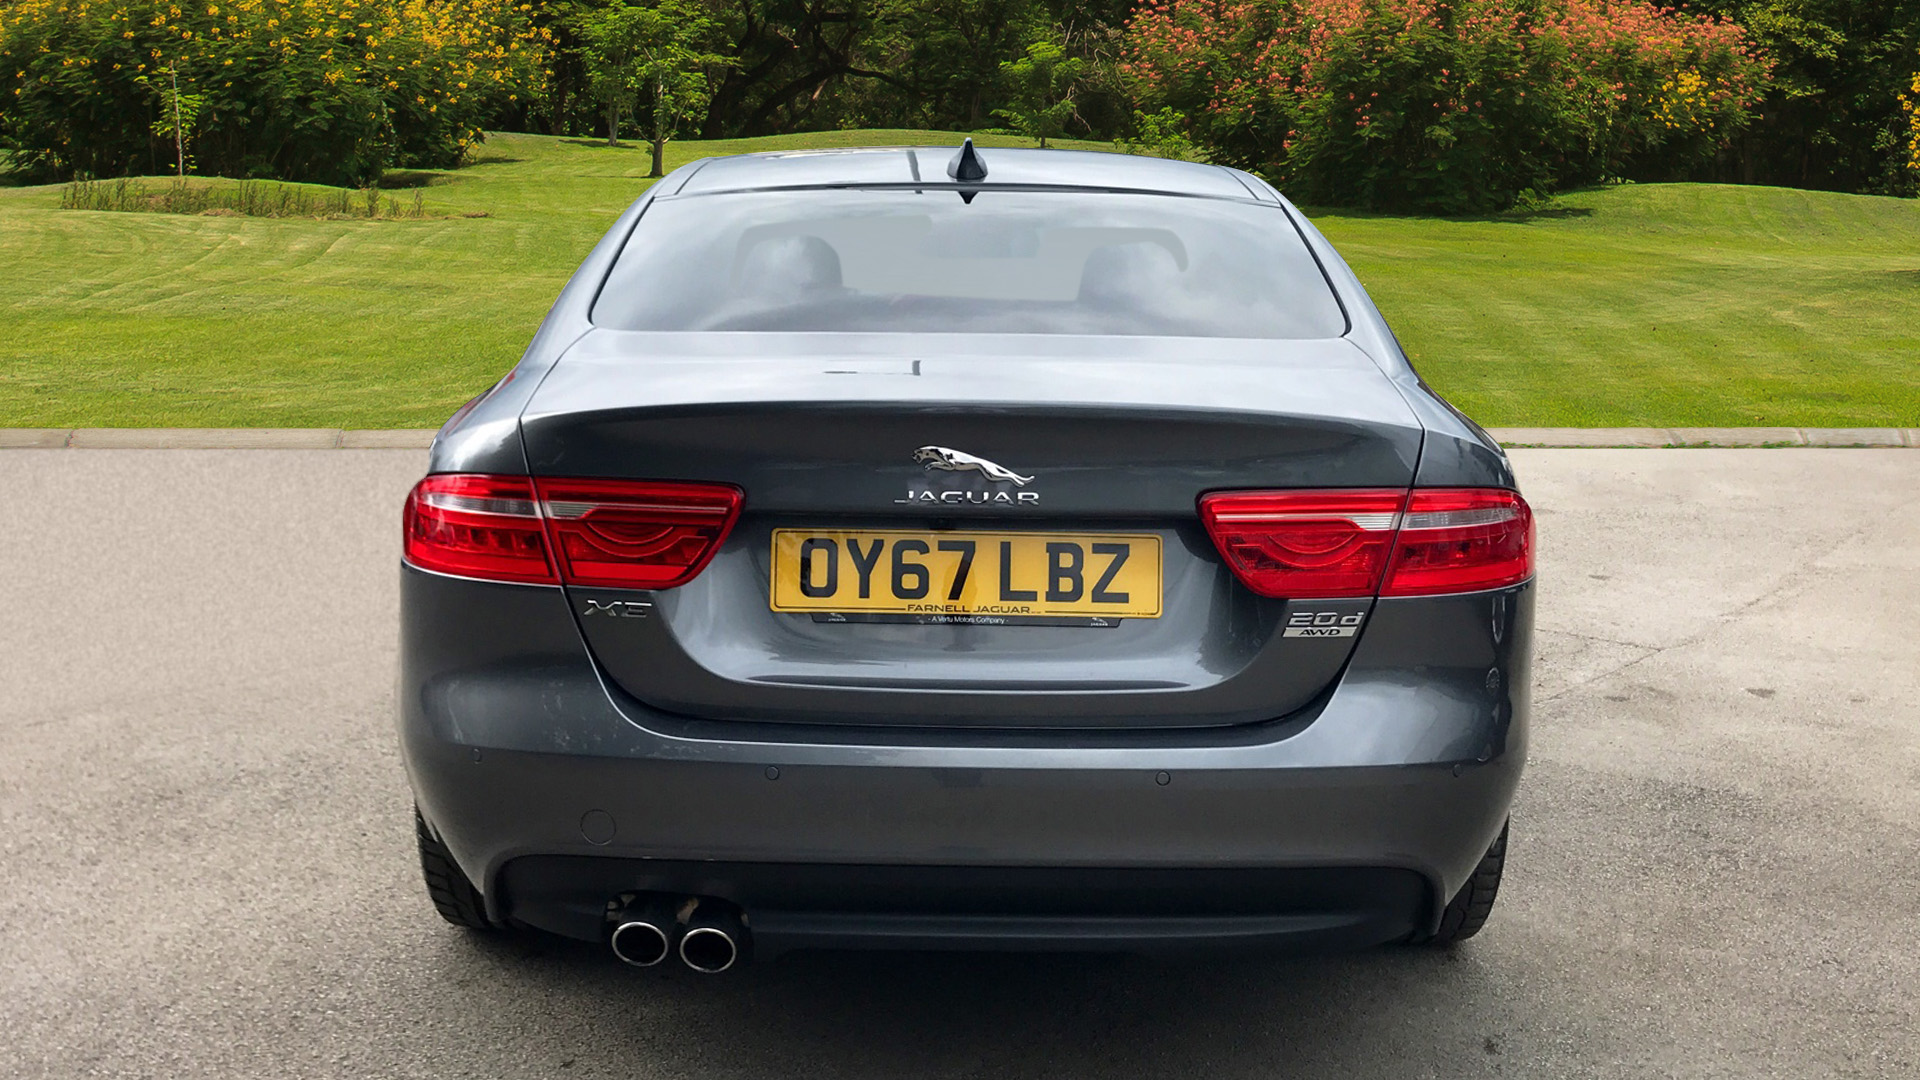 Used Jaguar XE 2 0D [180] Portfolio 4Dr Auto Awd Diesel Saloon for